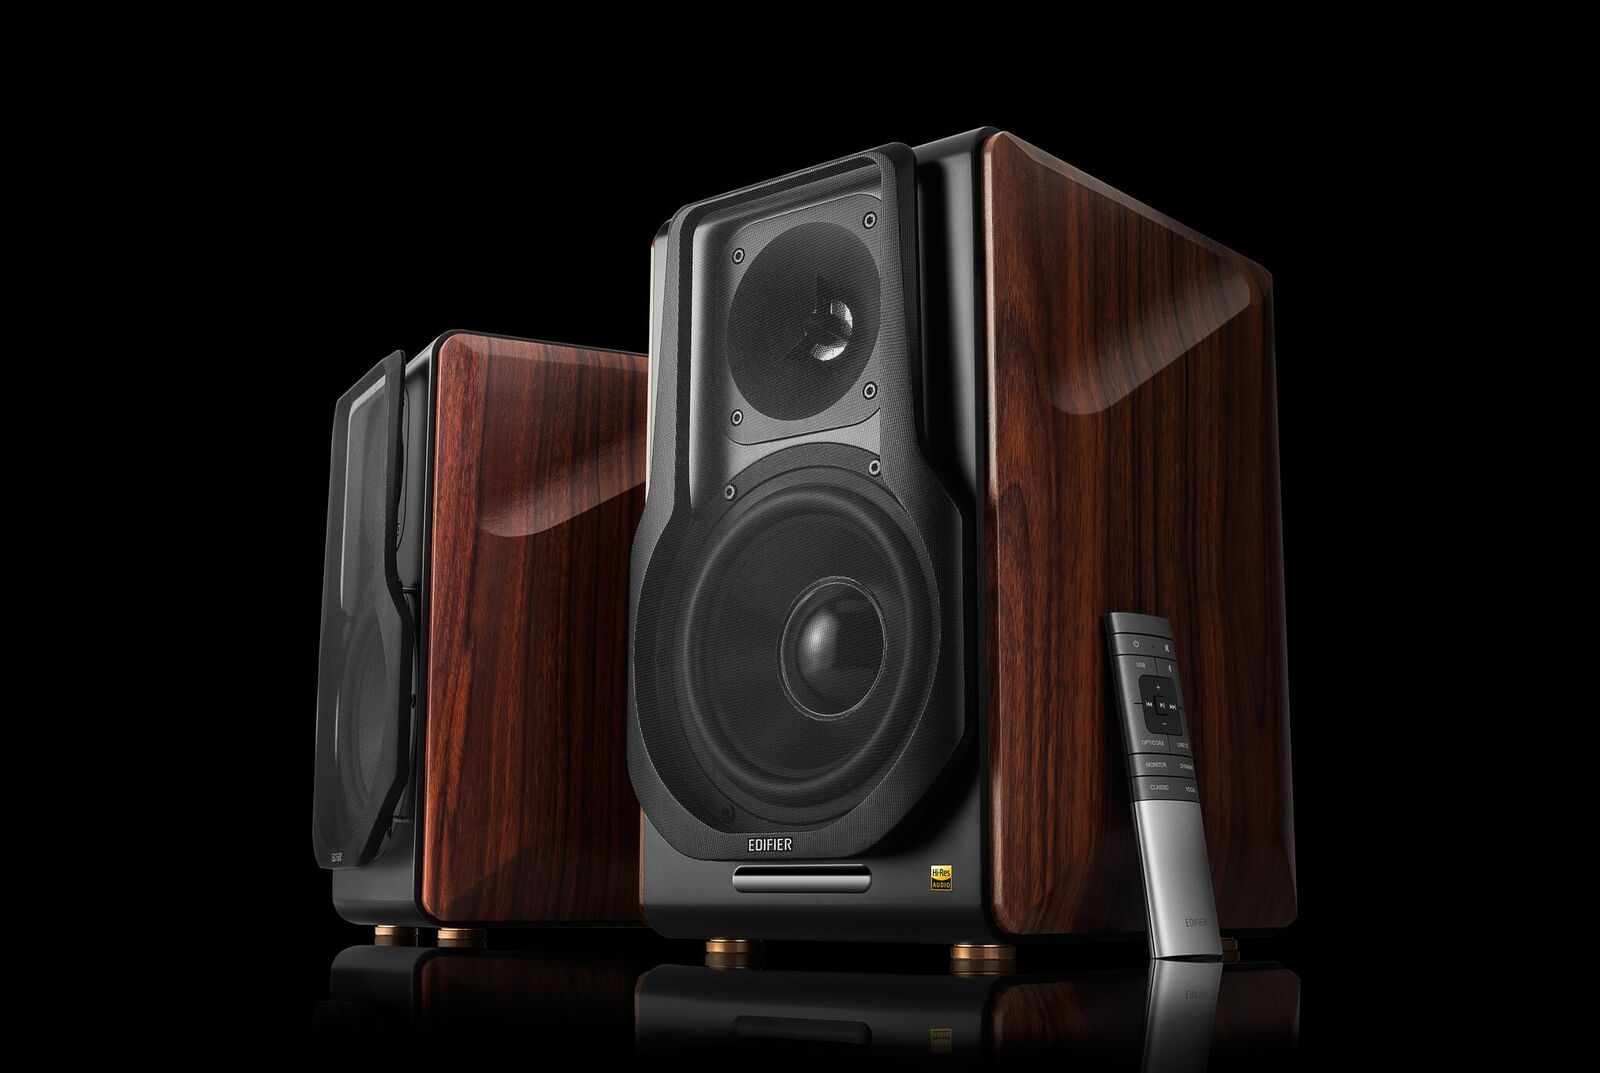 CES 2019 - EDIFIER REVEAL THE NEW S3000 PRO SPEAKERS